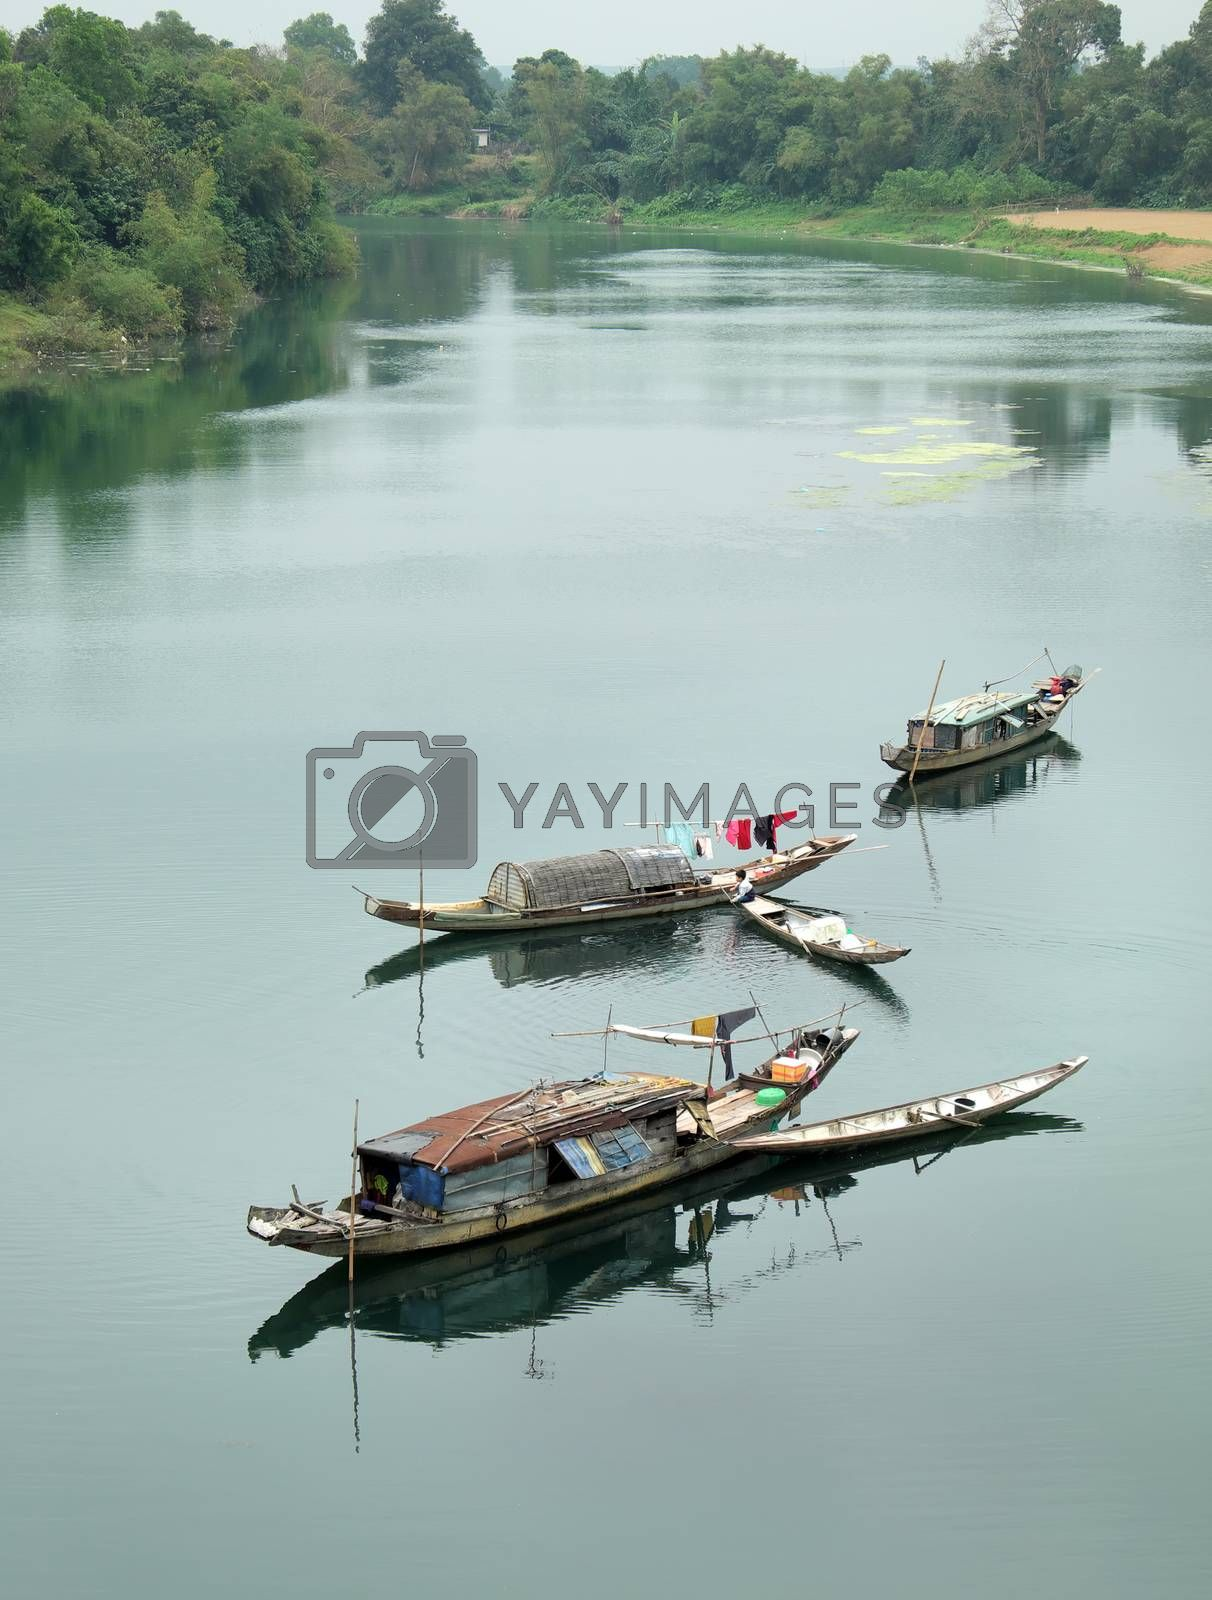 Beautiful landscape at Quang Binh countryside, Viet Nam on day, group of row boat floating on river at fishing village, poor Vietnam people work for live as fisherman and they live on water